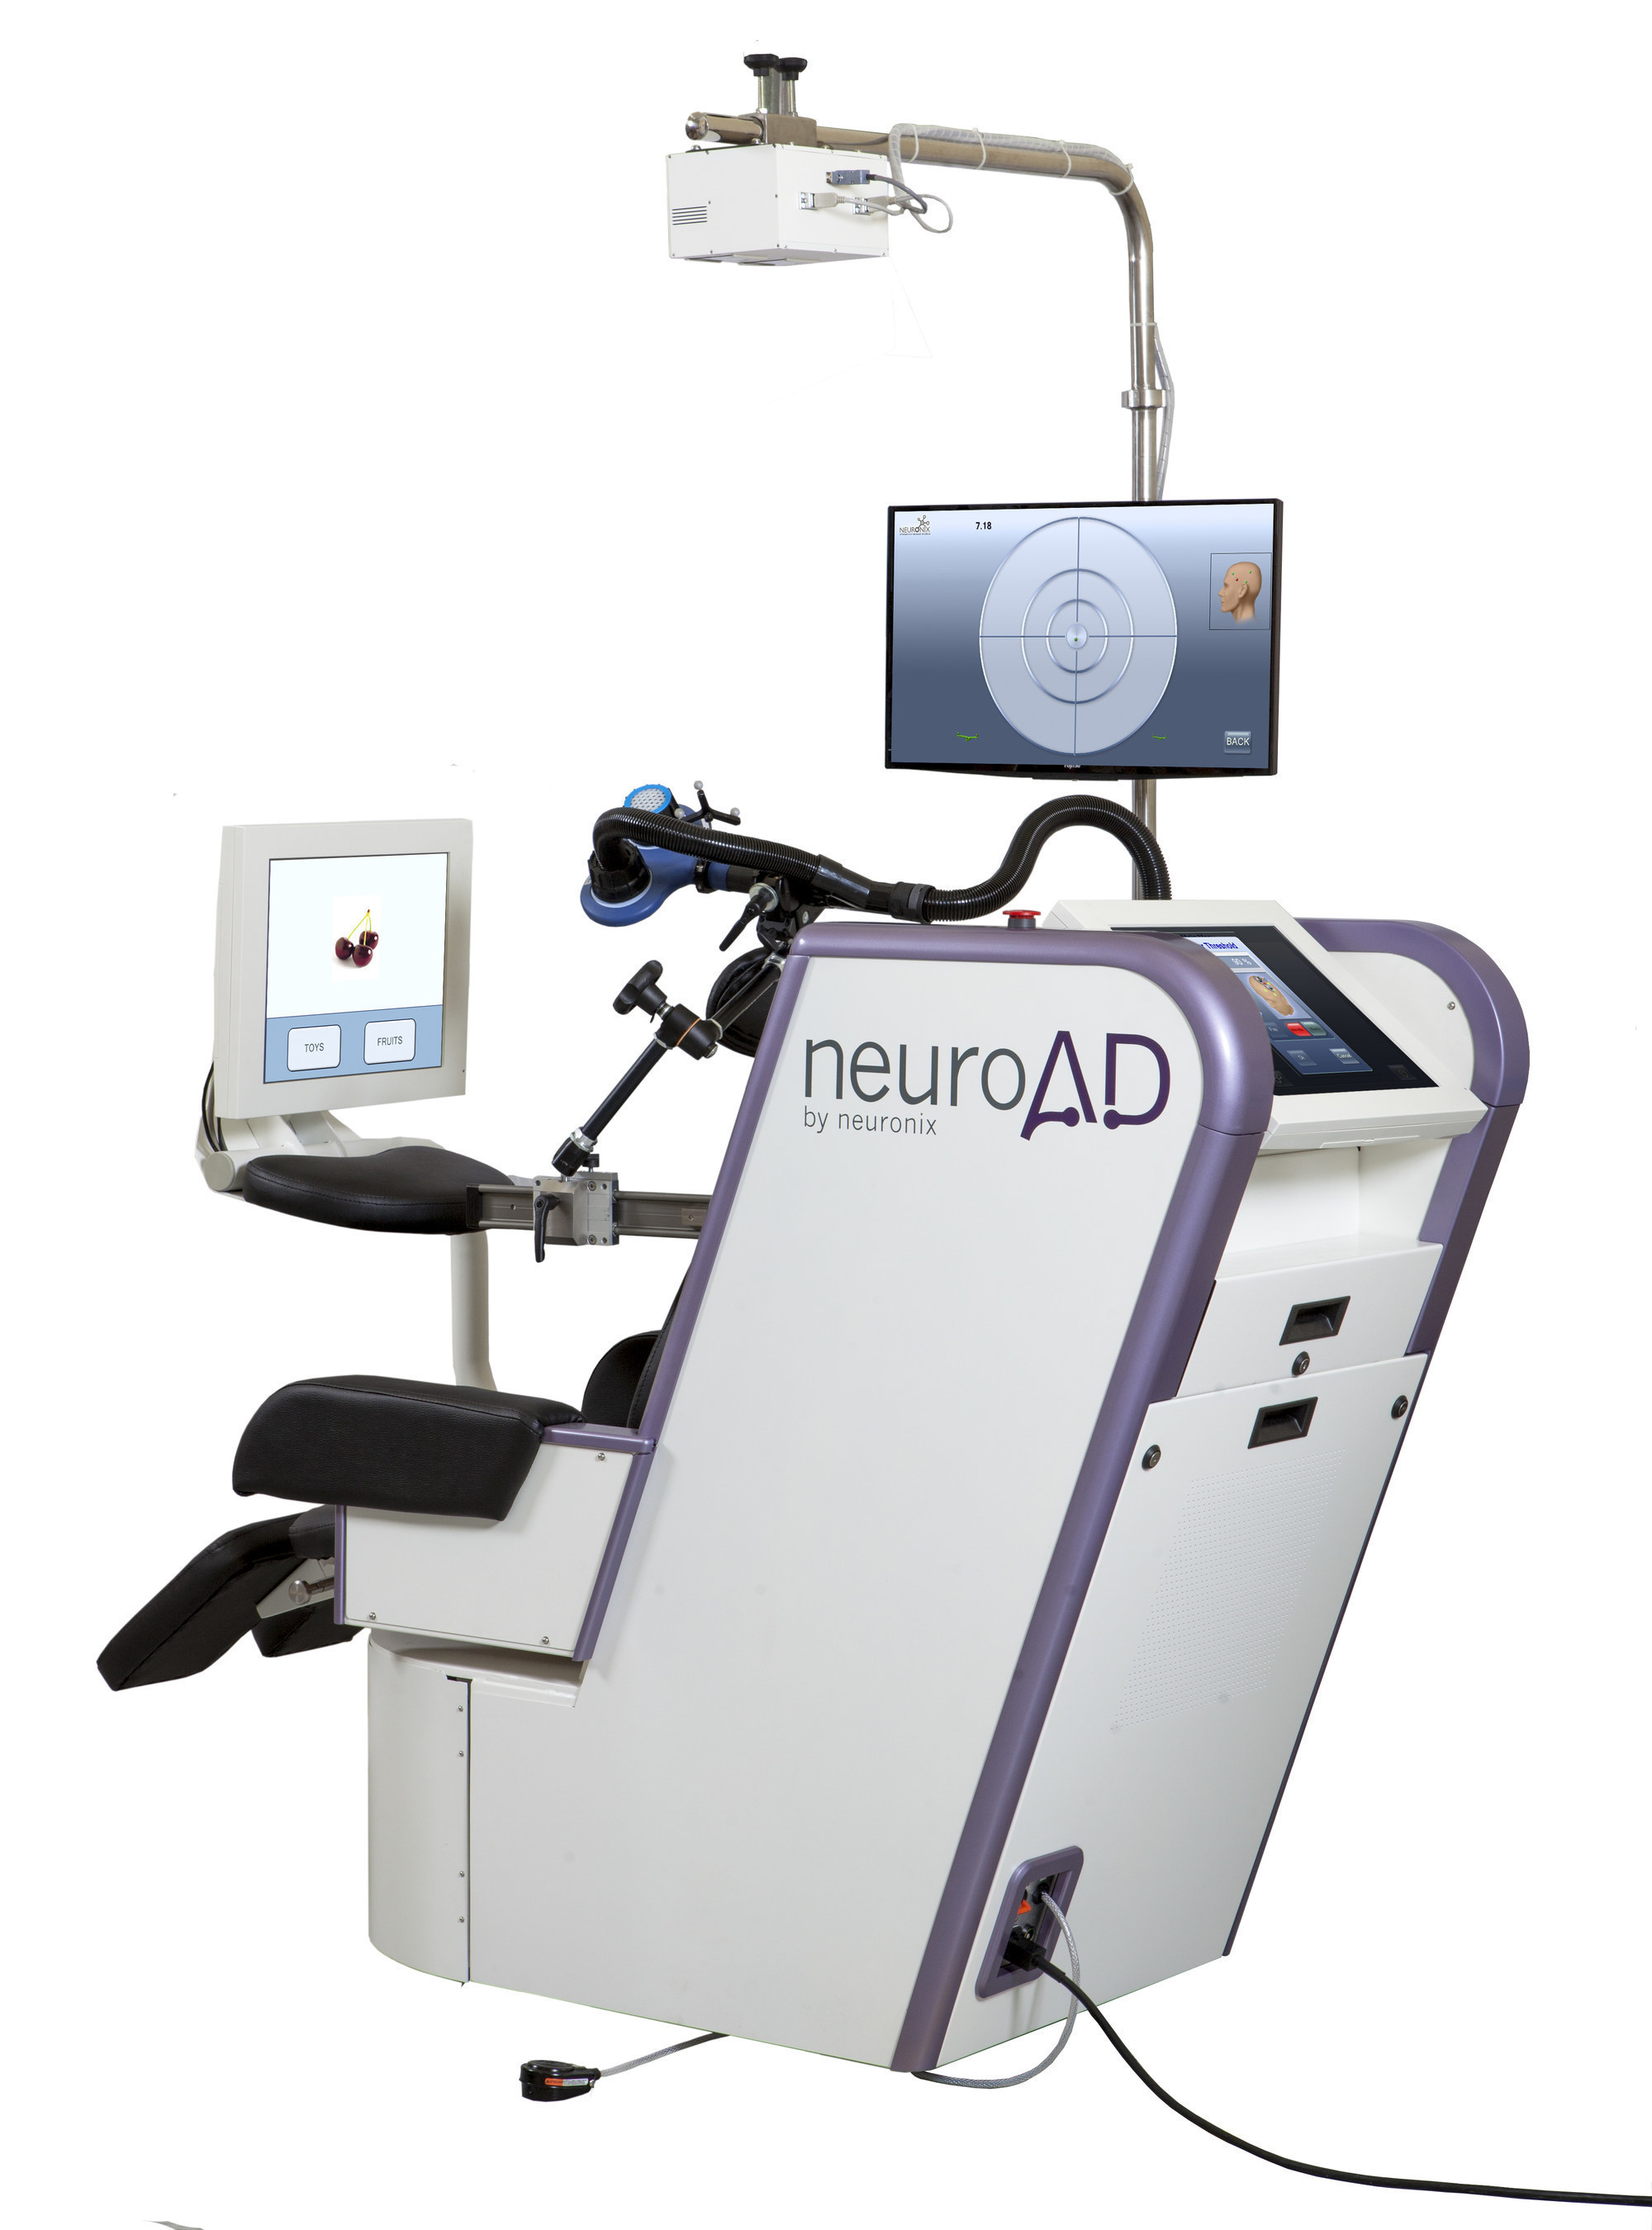 Neuronix announced positive results from its pivotal, double-blind placebo-controlled, multi-center clinical study, for the assessment of safety and efficacy of the neuroAD Therapy System, in the treatment of mild to moderate Alzheimer's disease. Neuronix has filed a U.S. FDA application seeking regulatory clearance to market its neuroAD Therapy System for treatment of Alzheimer's disease. If approved, the neuroAD Therapy System would be the first medical device ever cleared by the FDA for treatment of Alzheimer's. neuroAD is a patent-protected, non-invasive medical device, uniquely combining transcranial magnetic stimulation (TMS) with cognitive training, to concurrently target brain regions affected.